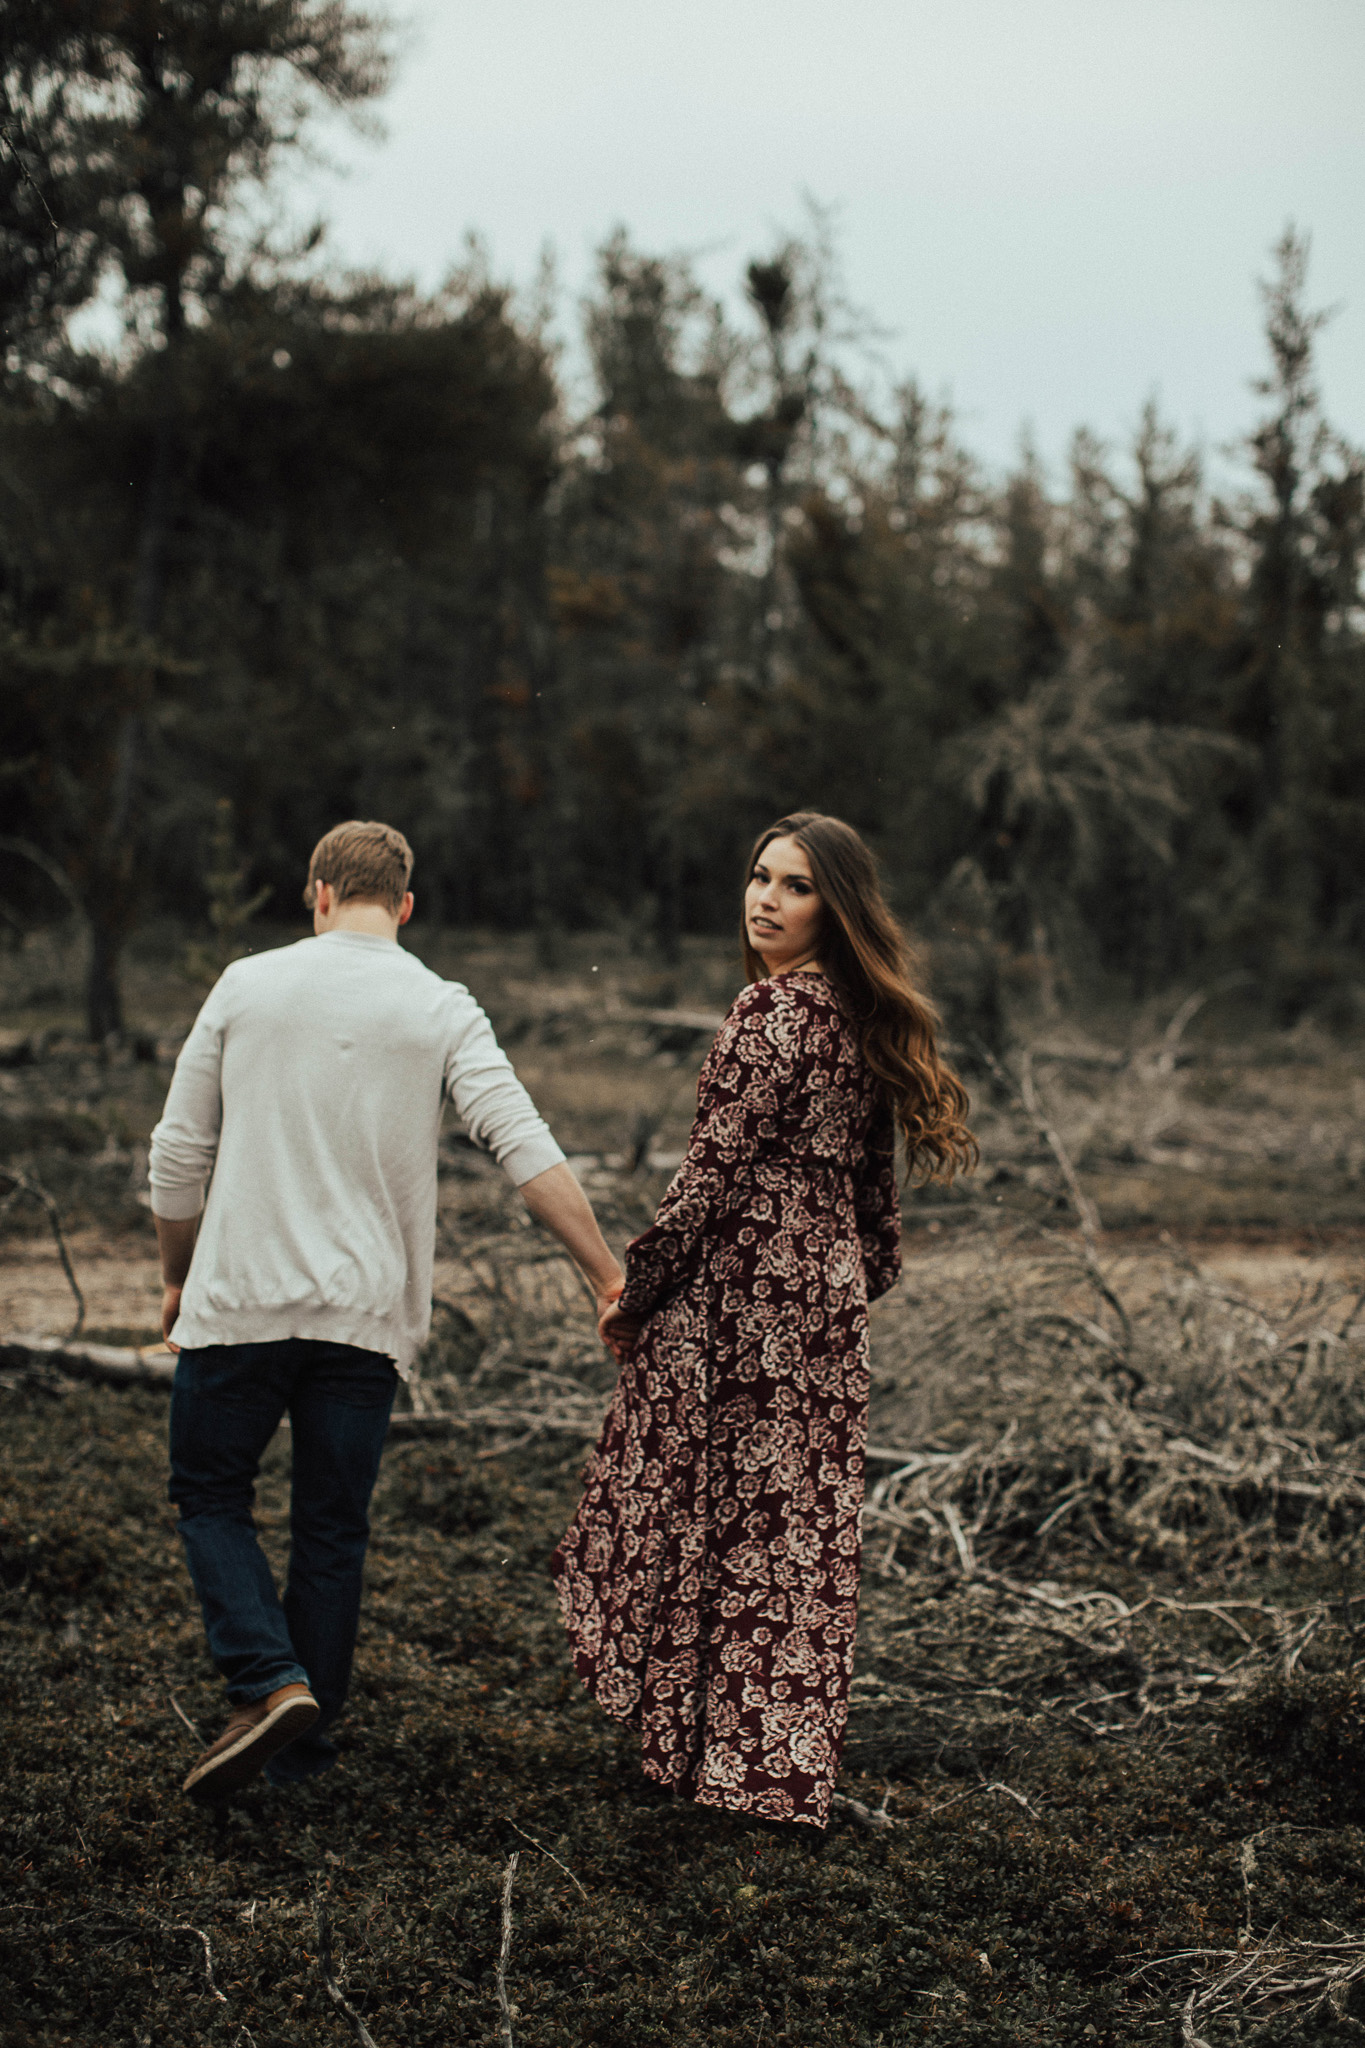 Edmonton Engagement Photographer - Michelle Larmand Photography - Mossy woods engagement session056